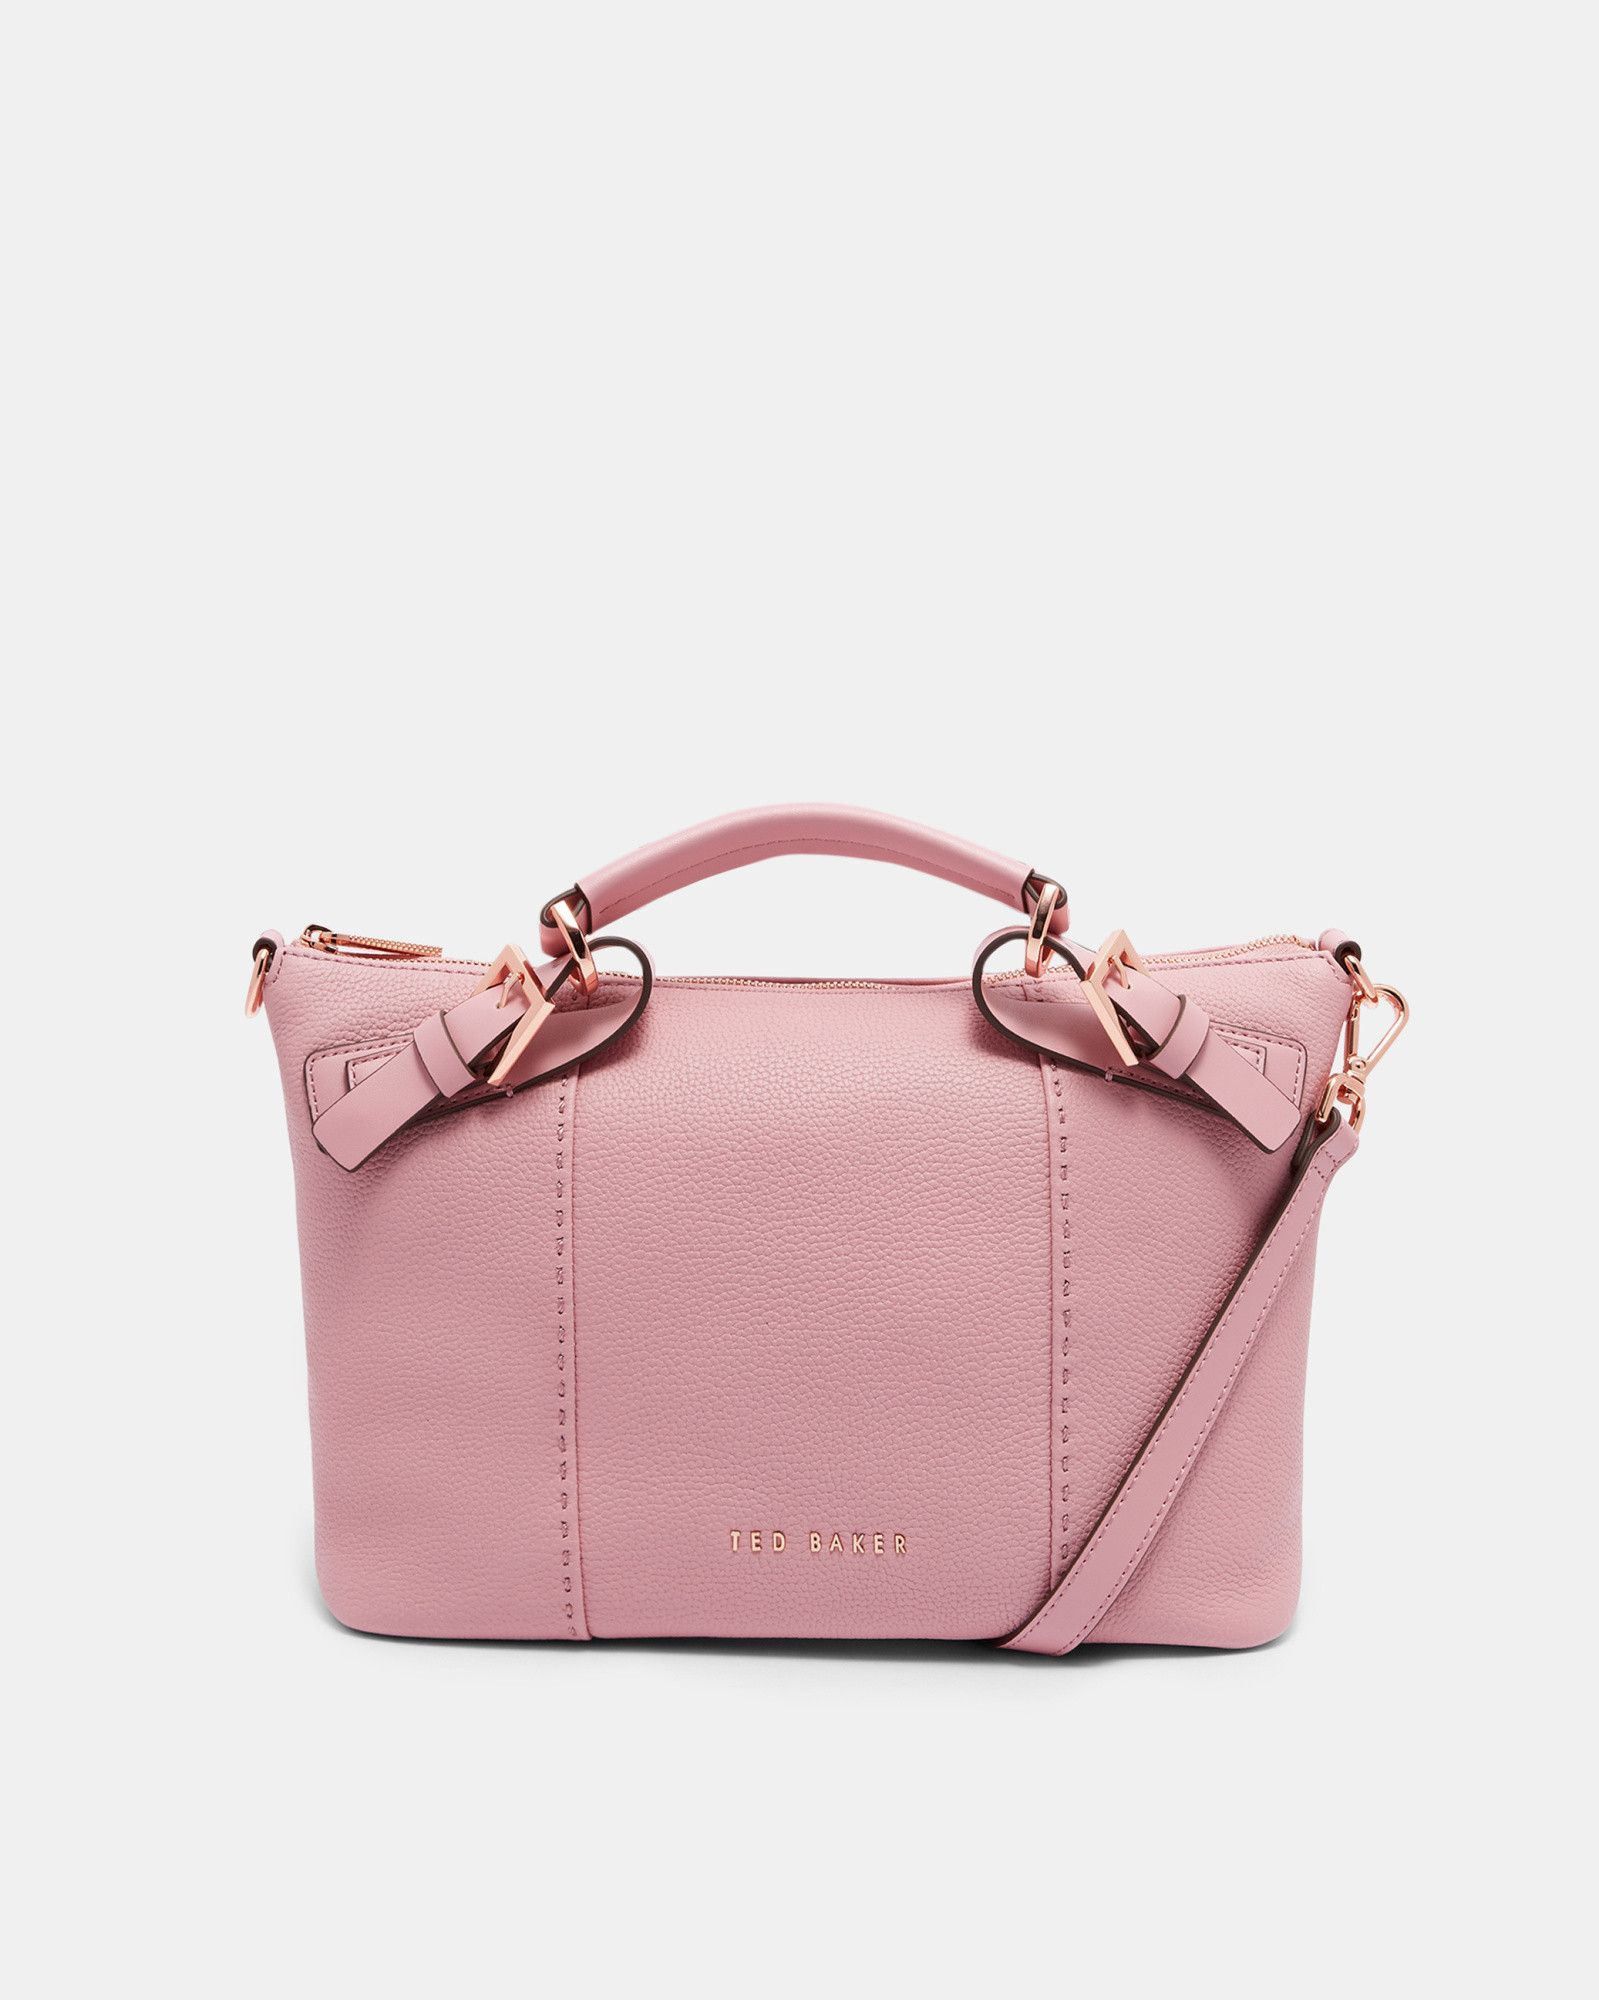 a469f8eb9 Ted Baker Pop handle small leather tote bag